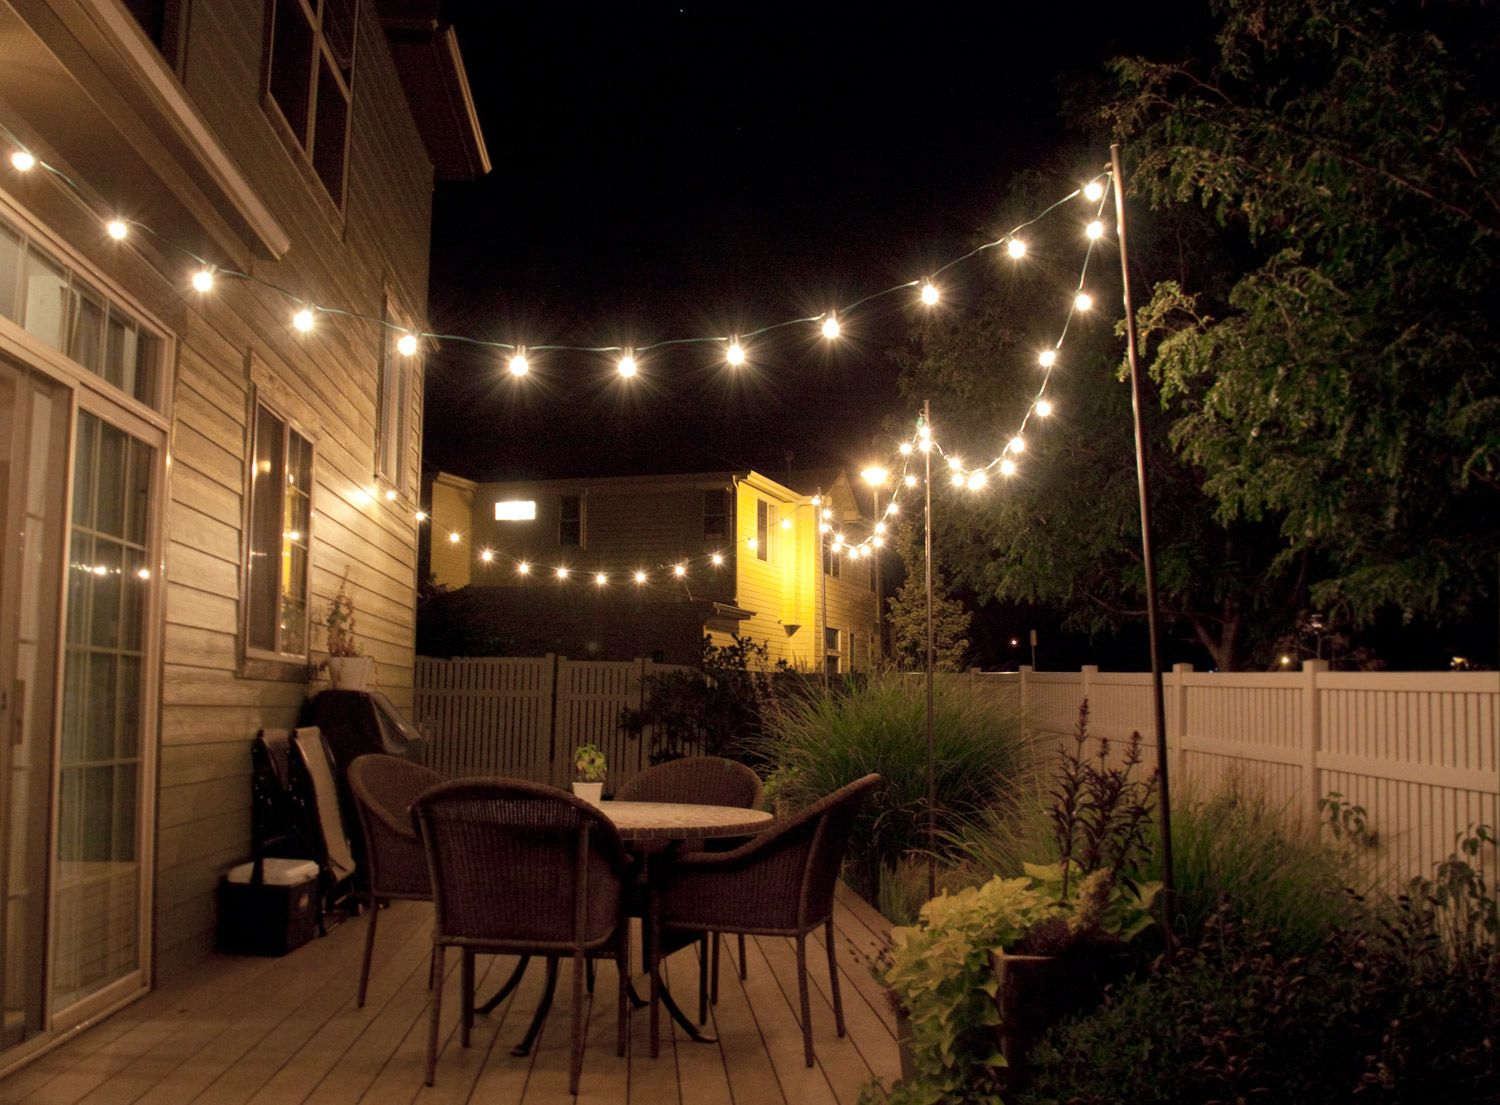 How To Make Inexpensive Poles Hang String Lights On Café Style Via Bright July